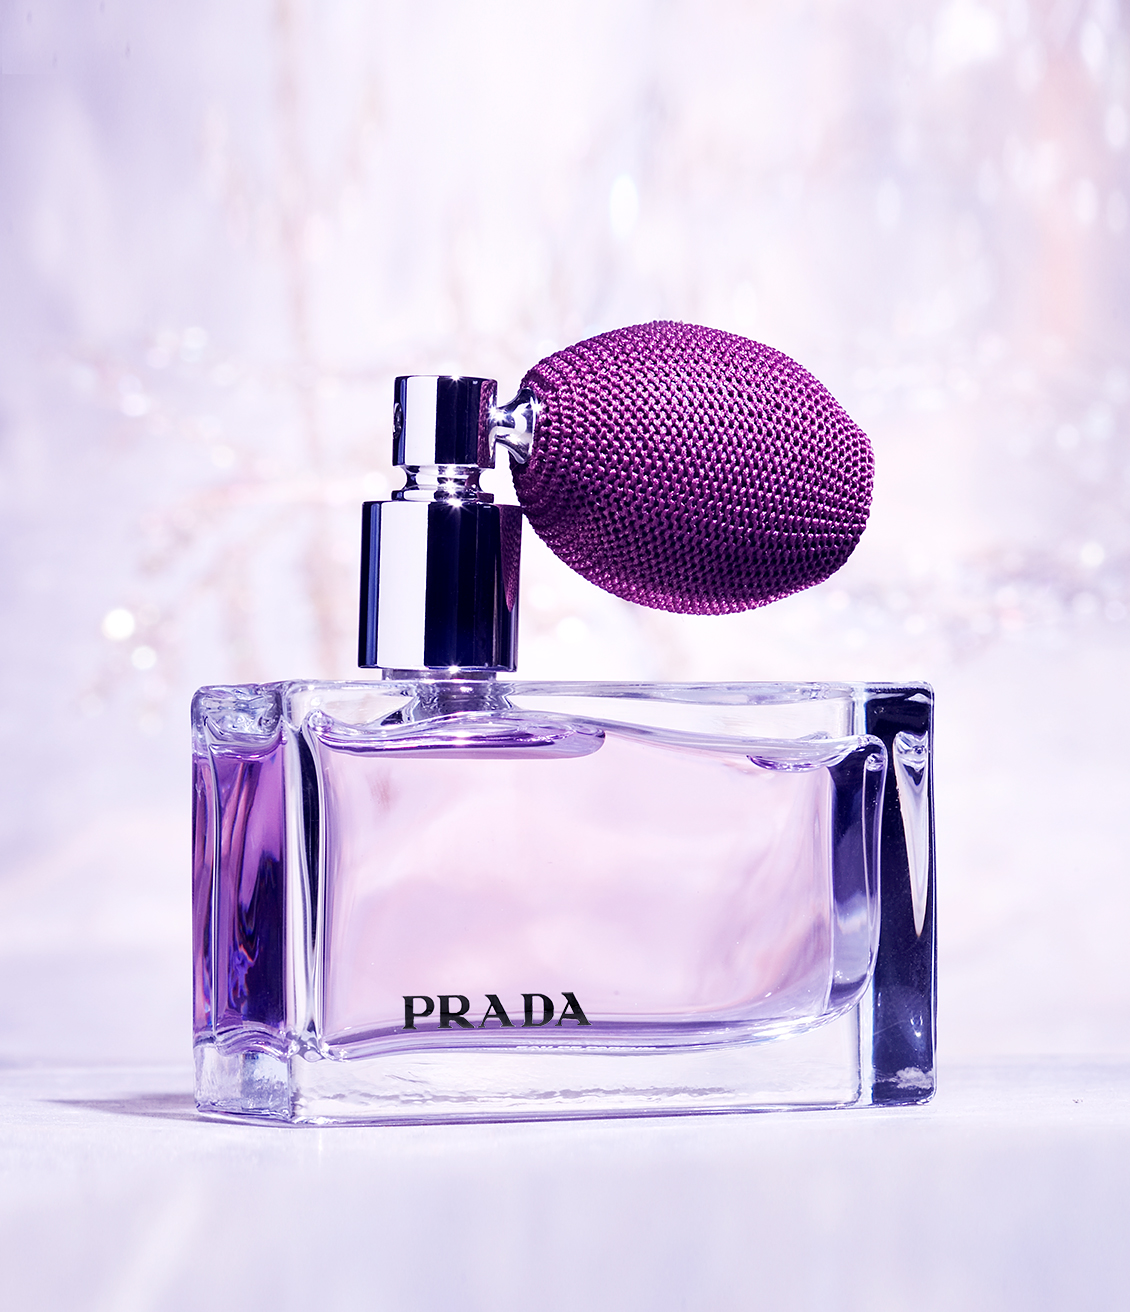 Prada perfume professional product photography